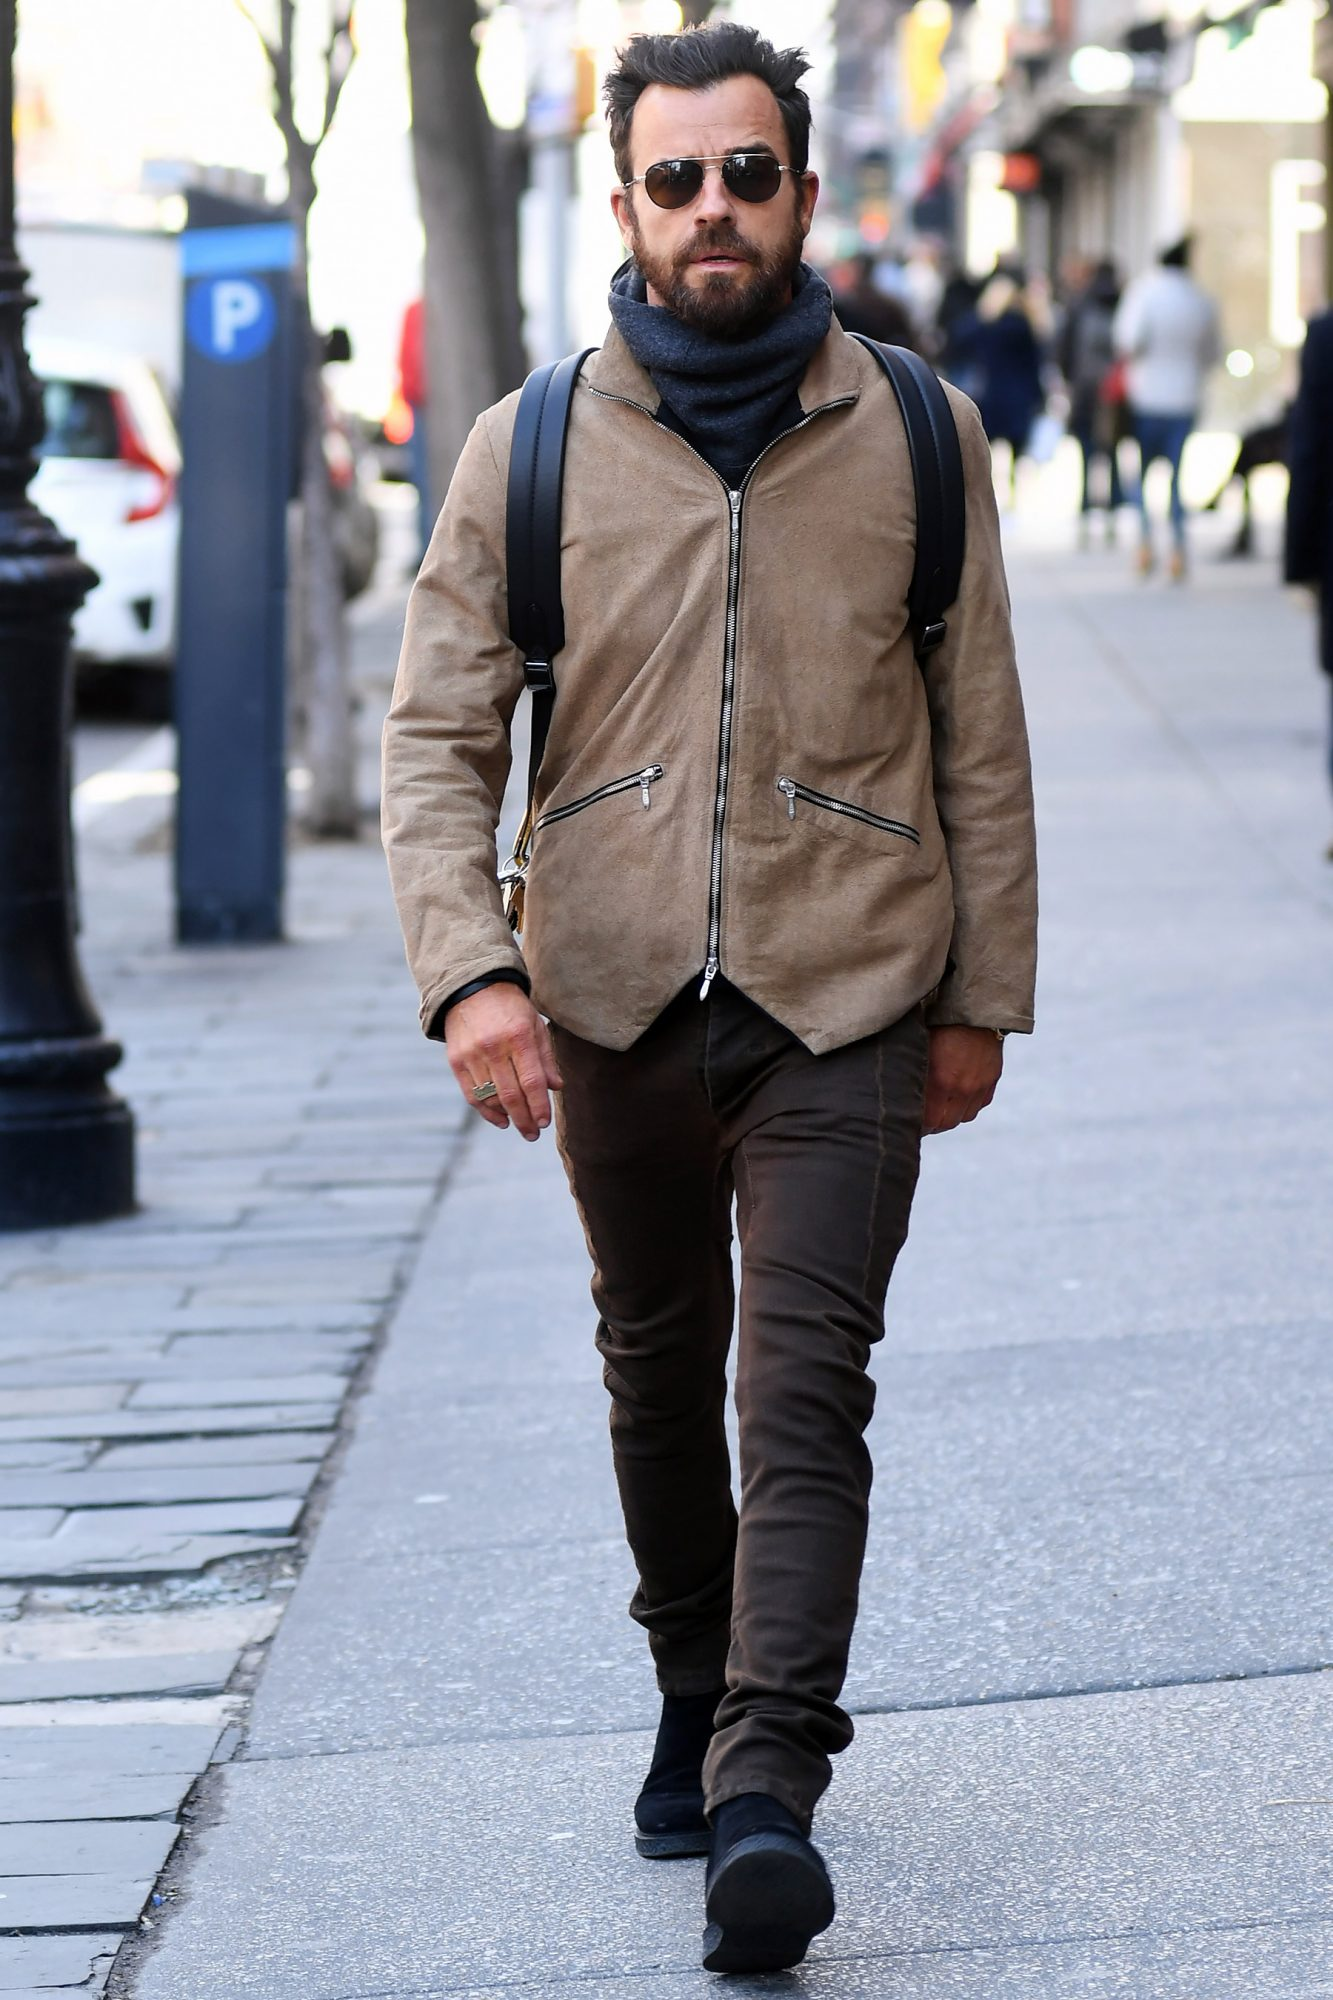 Justin Theroux steps out to buy some groceries after rumors she is dating new girl names Petra Collins